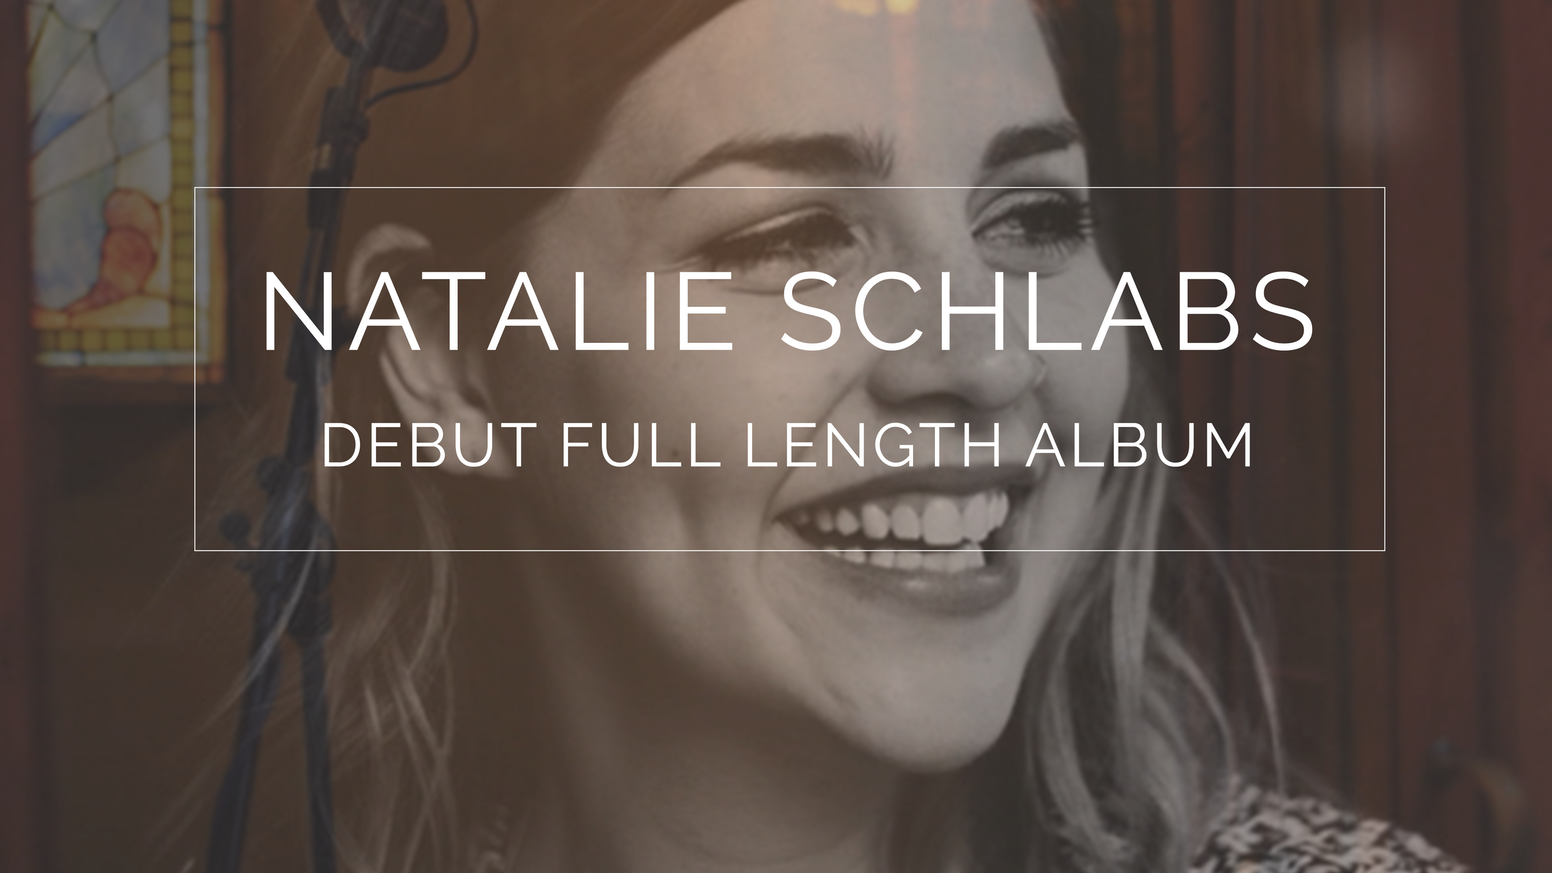 Help fund the debut full length album for Nashville singer/songwriter Natalie Schlabs